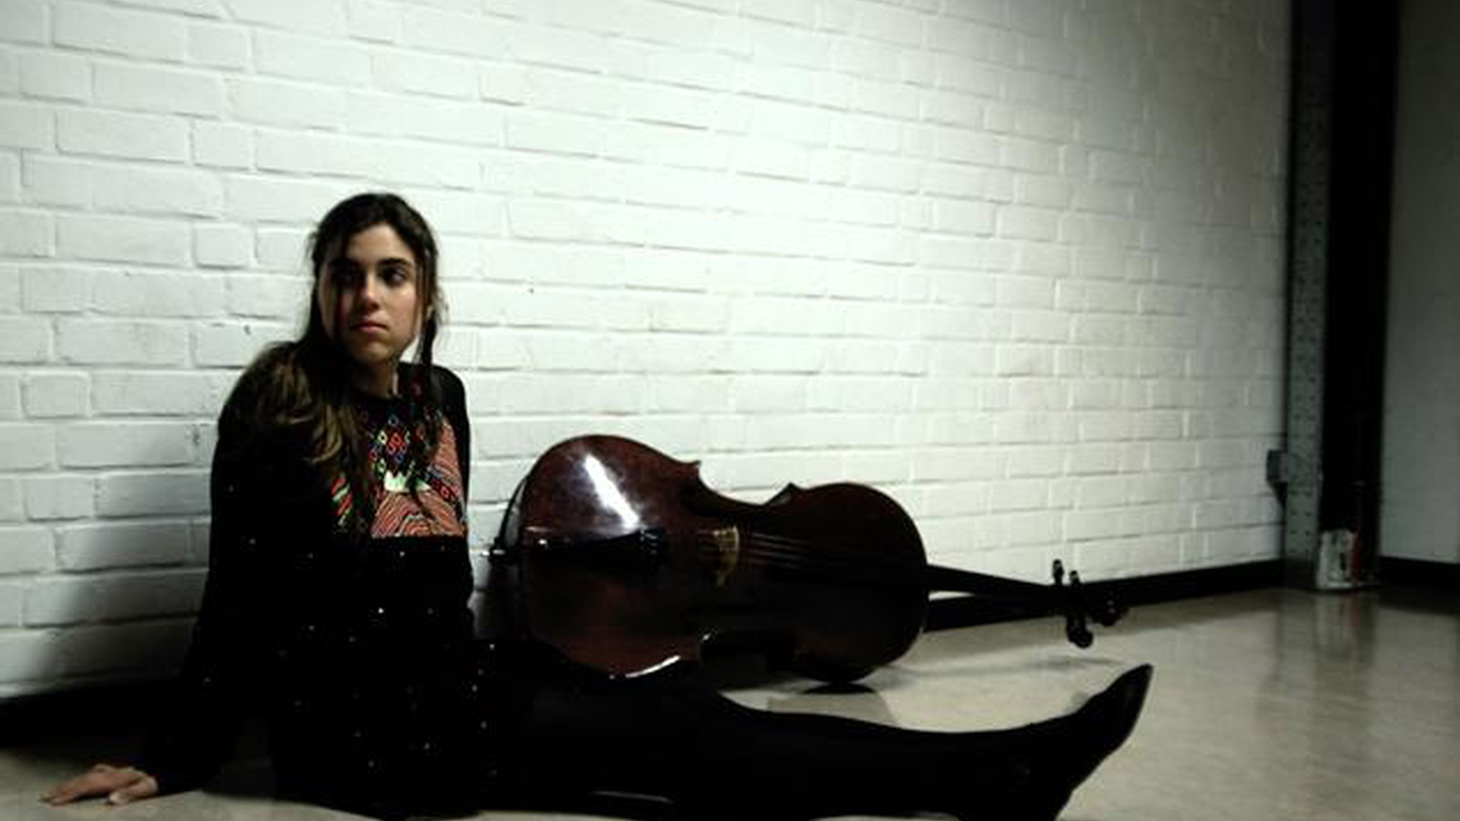 The songs of Brazilian cellist and vocalist Dom La Nena unfold into delicate melodies written about her childhood.